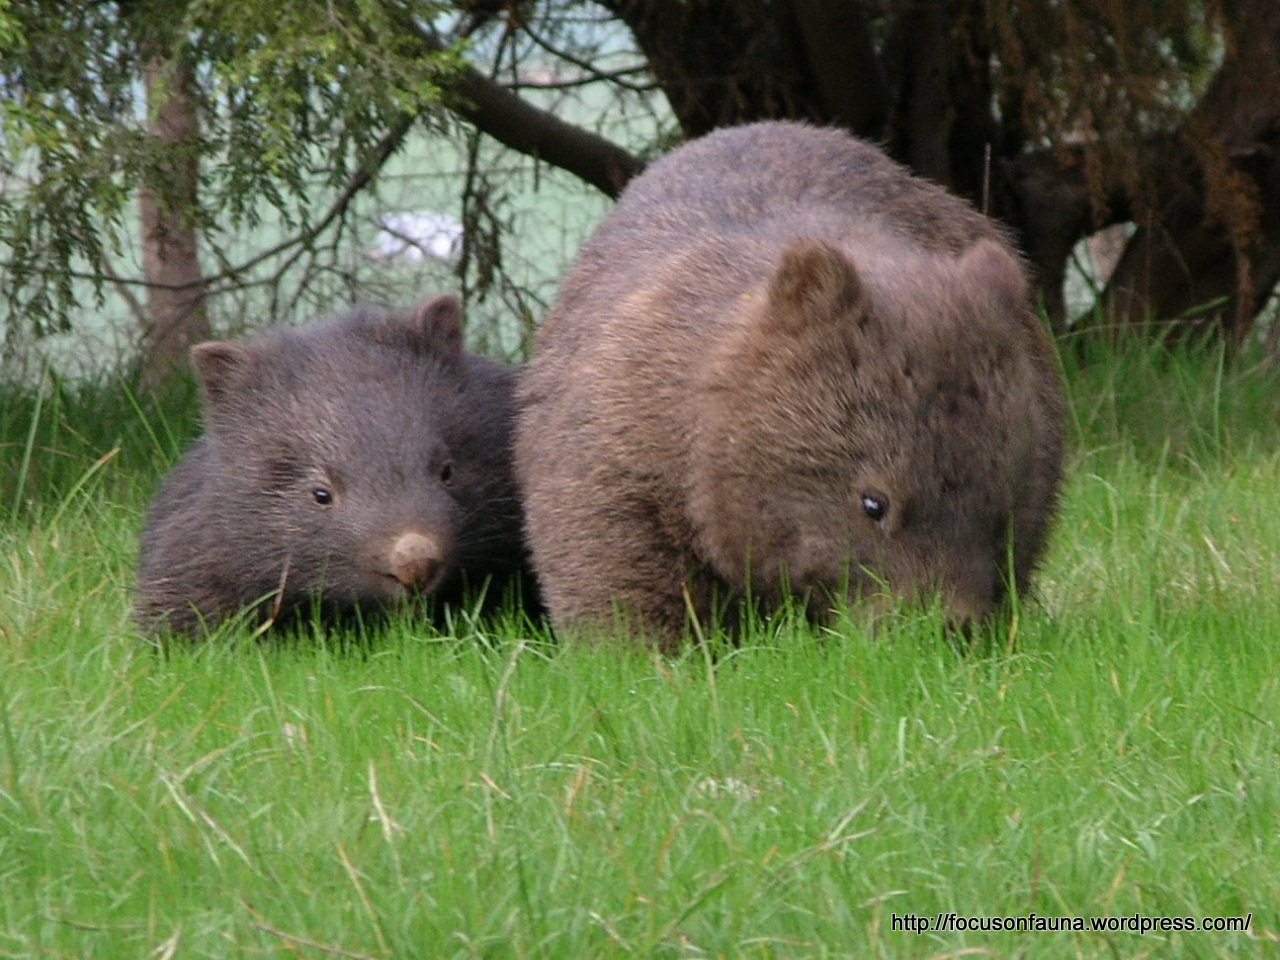 Here Is What Thought To Be The Same Wombat With Her Young In Late